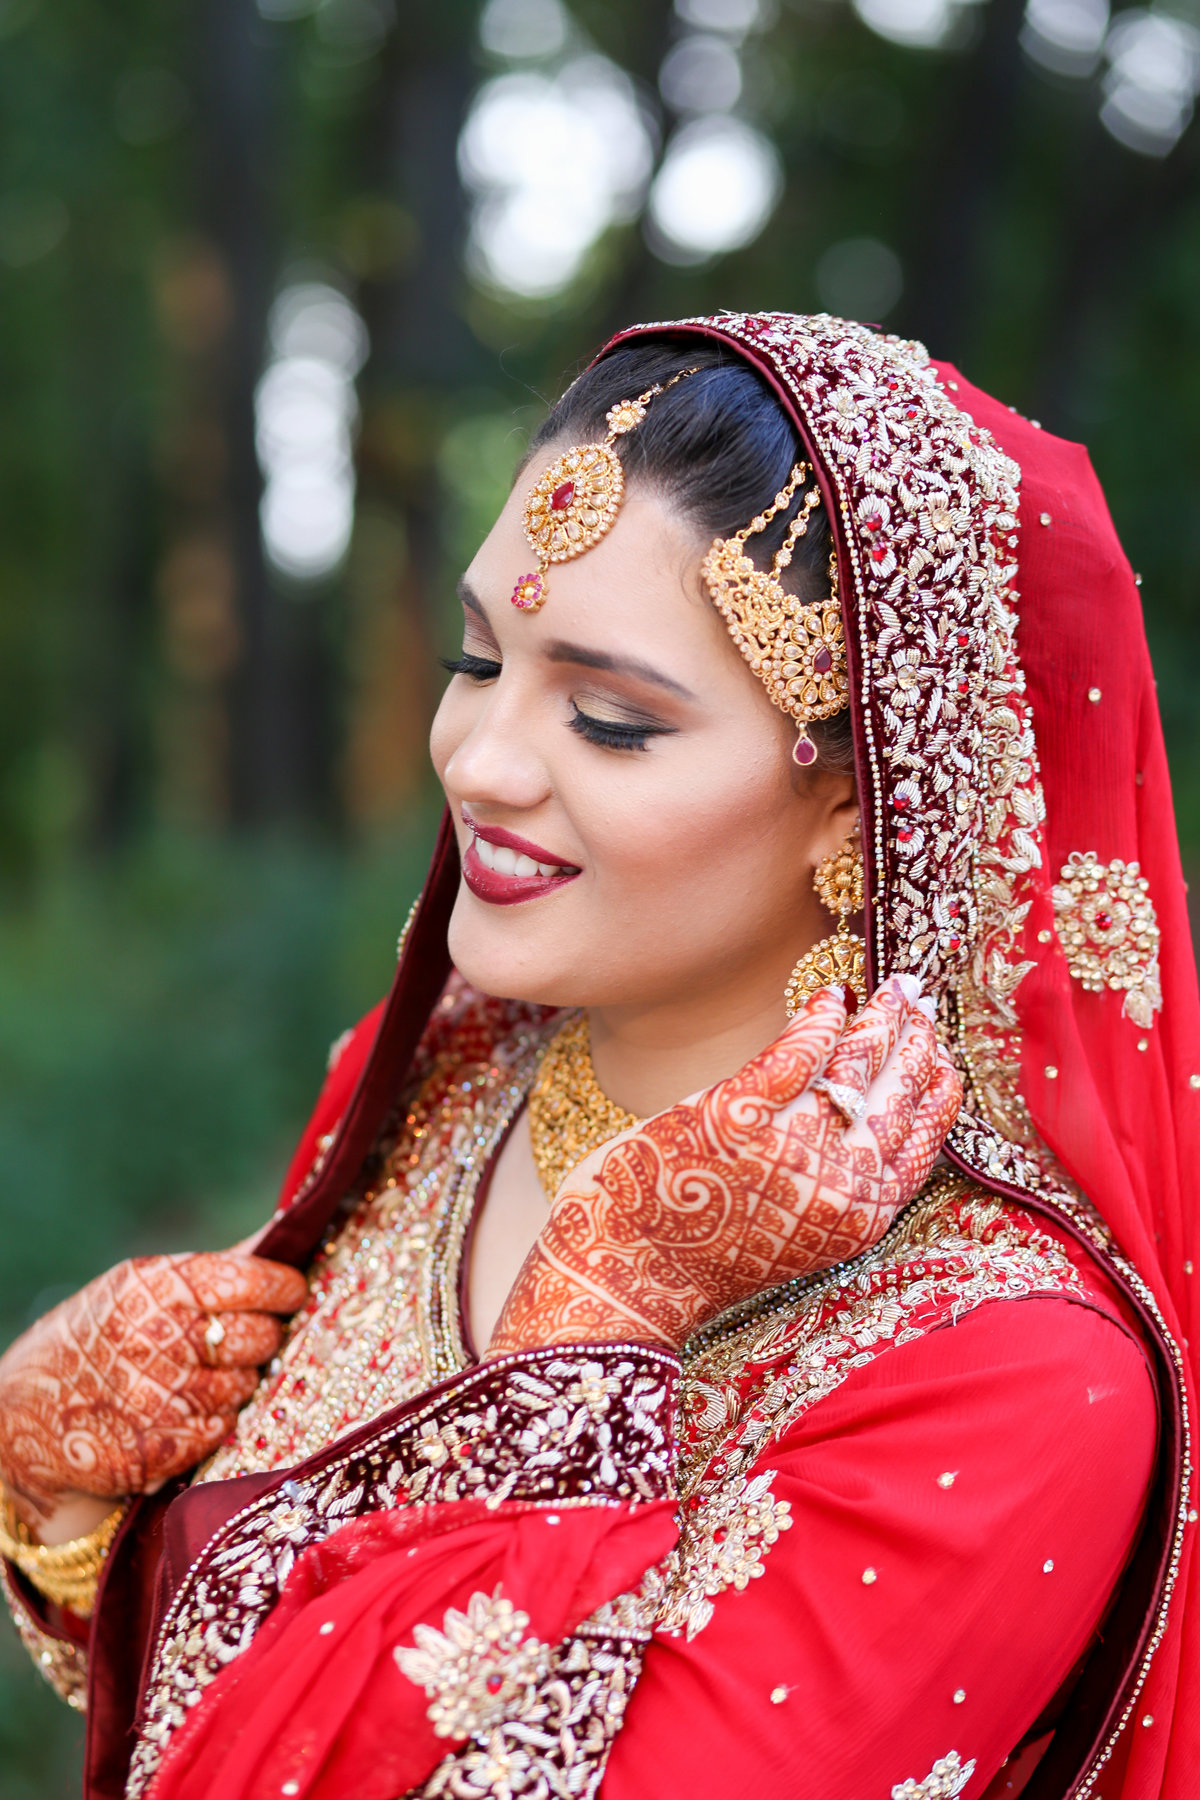 Indian Wedding Photographer Kansas City Overland Park Leawood Punjabi Desi Wedding